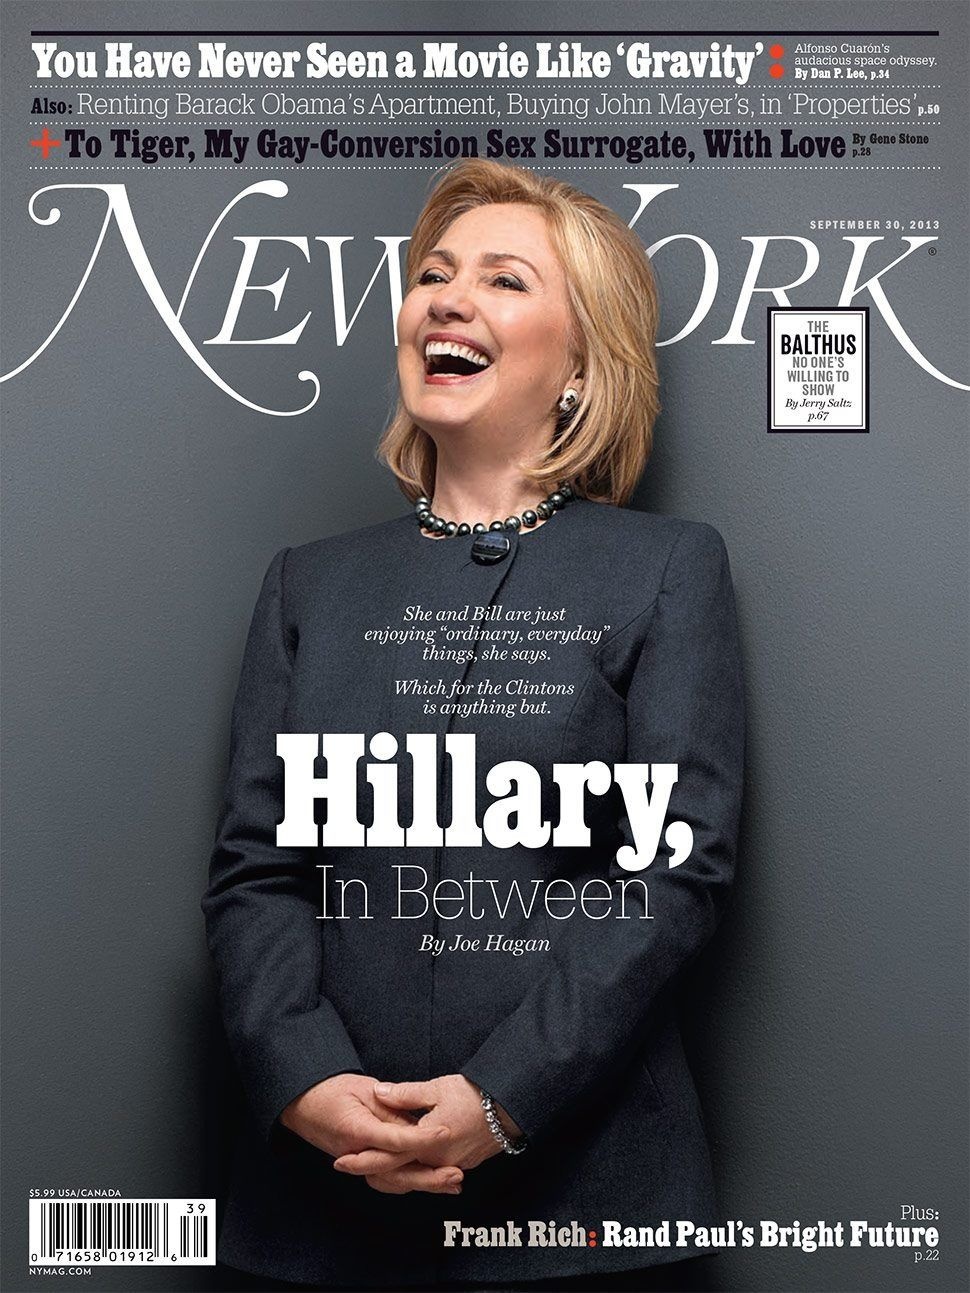 Hillary Clinton On The Cover Of New York Magazine Hillaryclinton